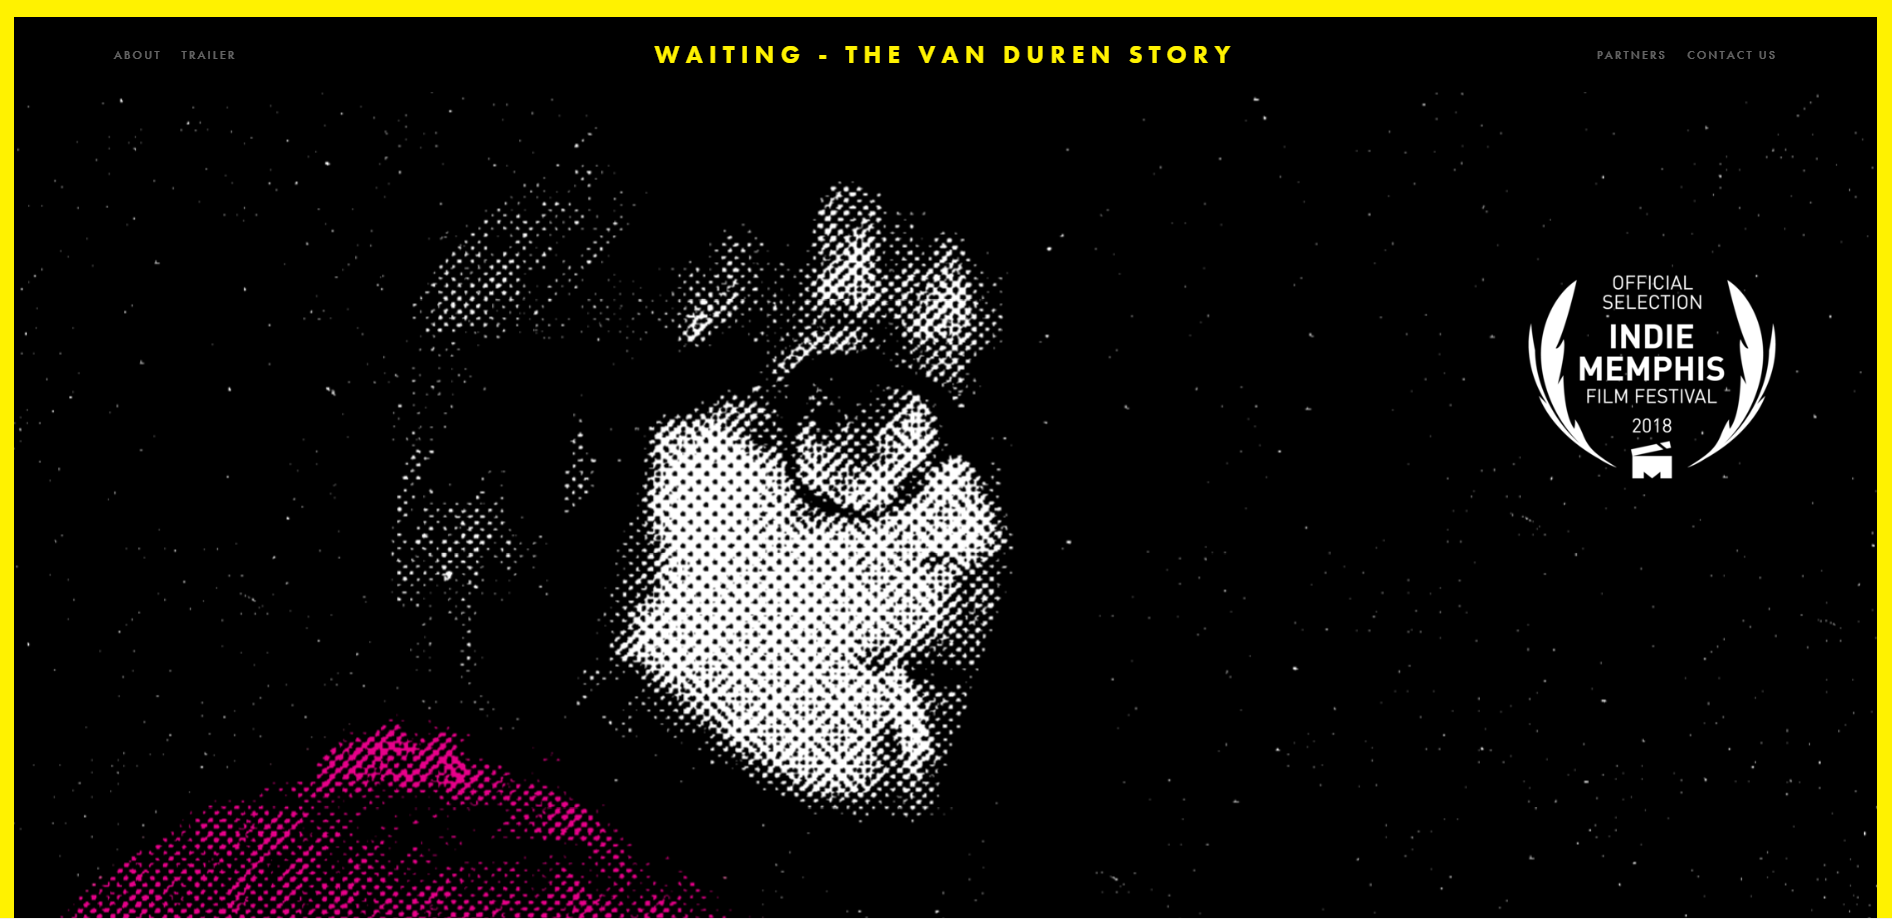 Waiting - The Van Duren Story